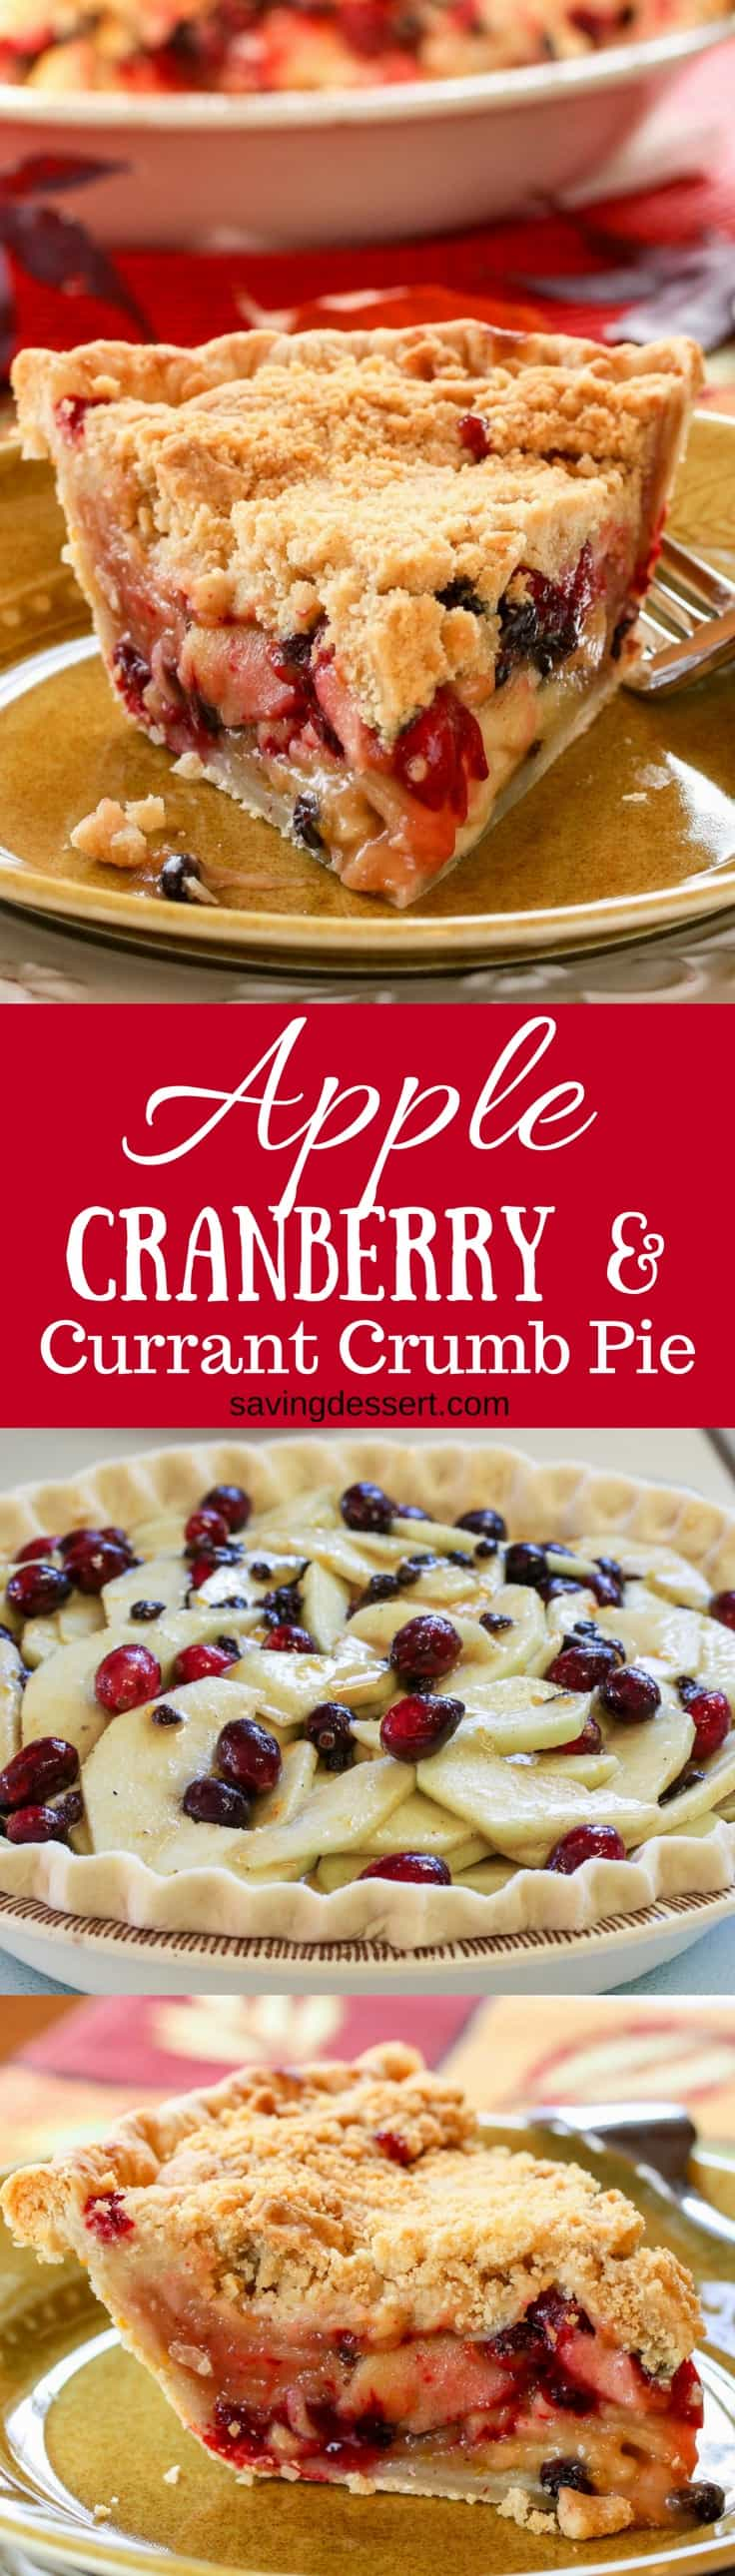 Apple, Cranberry & Currant Crumb Pie | www.savingdessert.com #pie #applepie #cranberry #Crumbpie